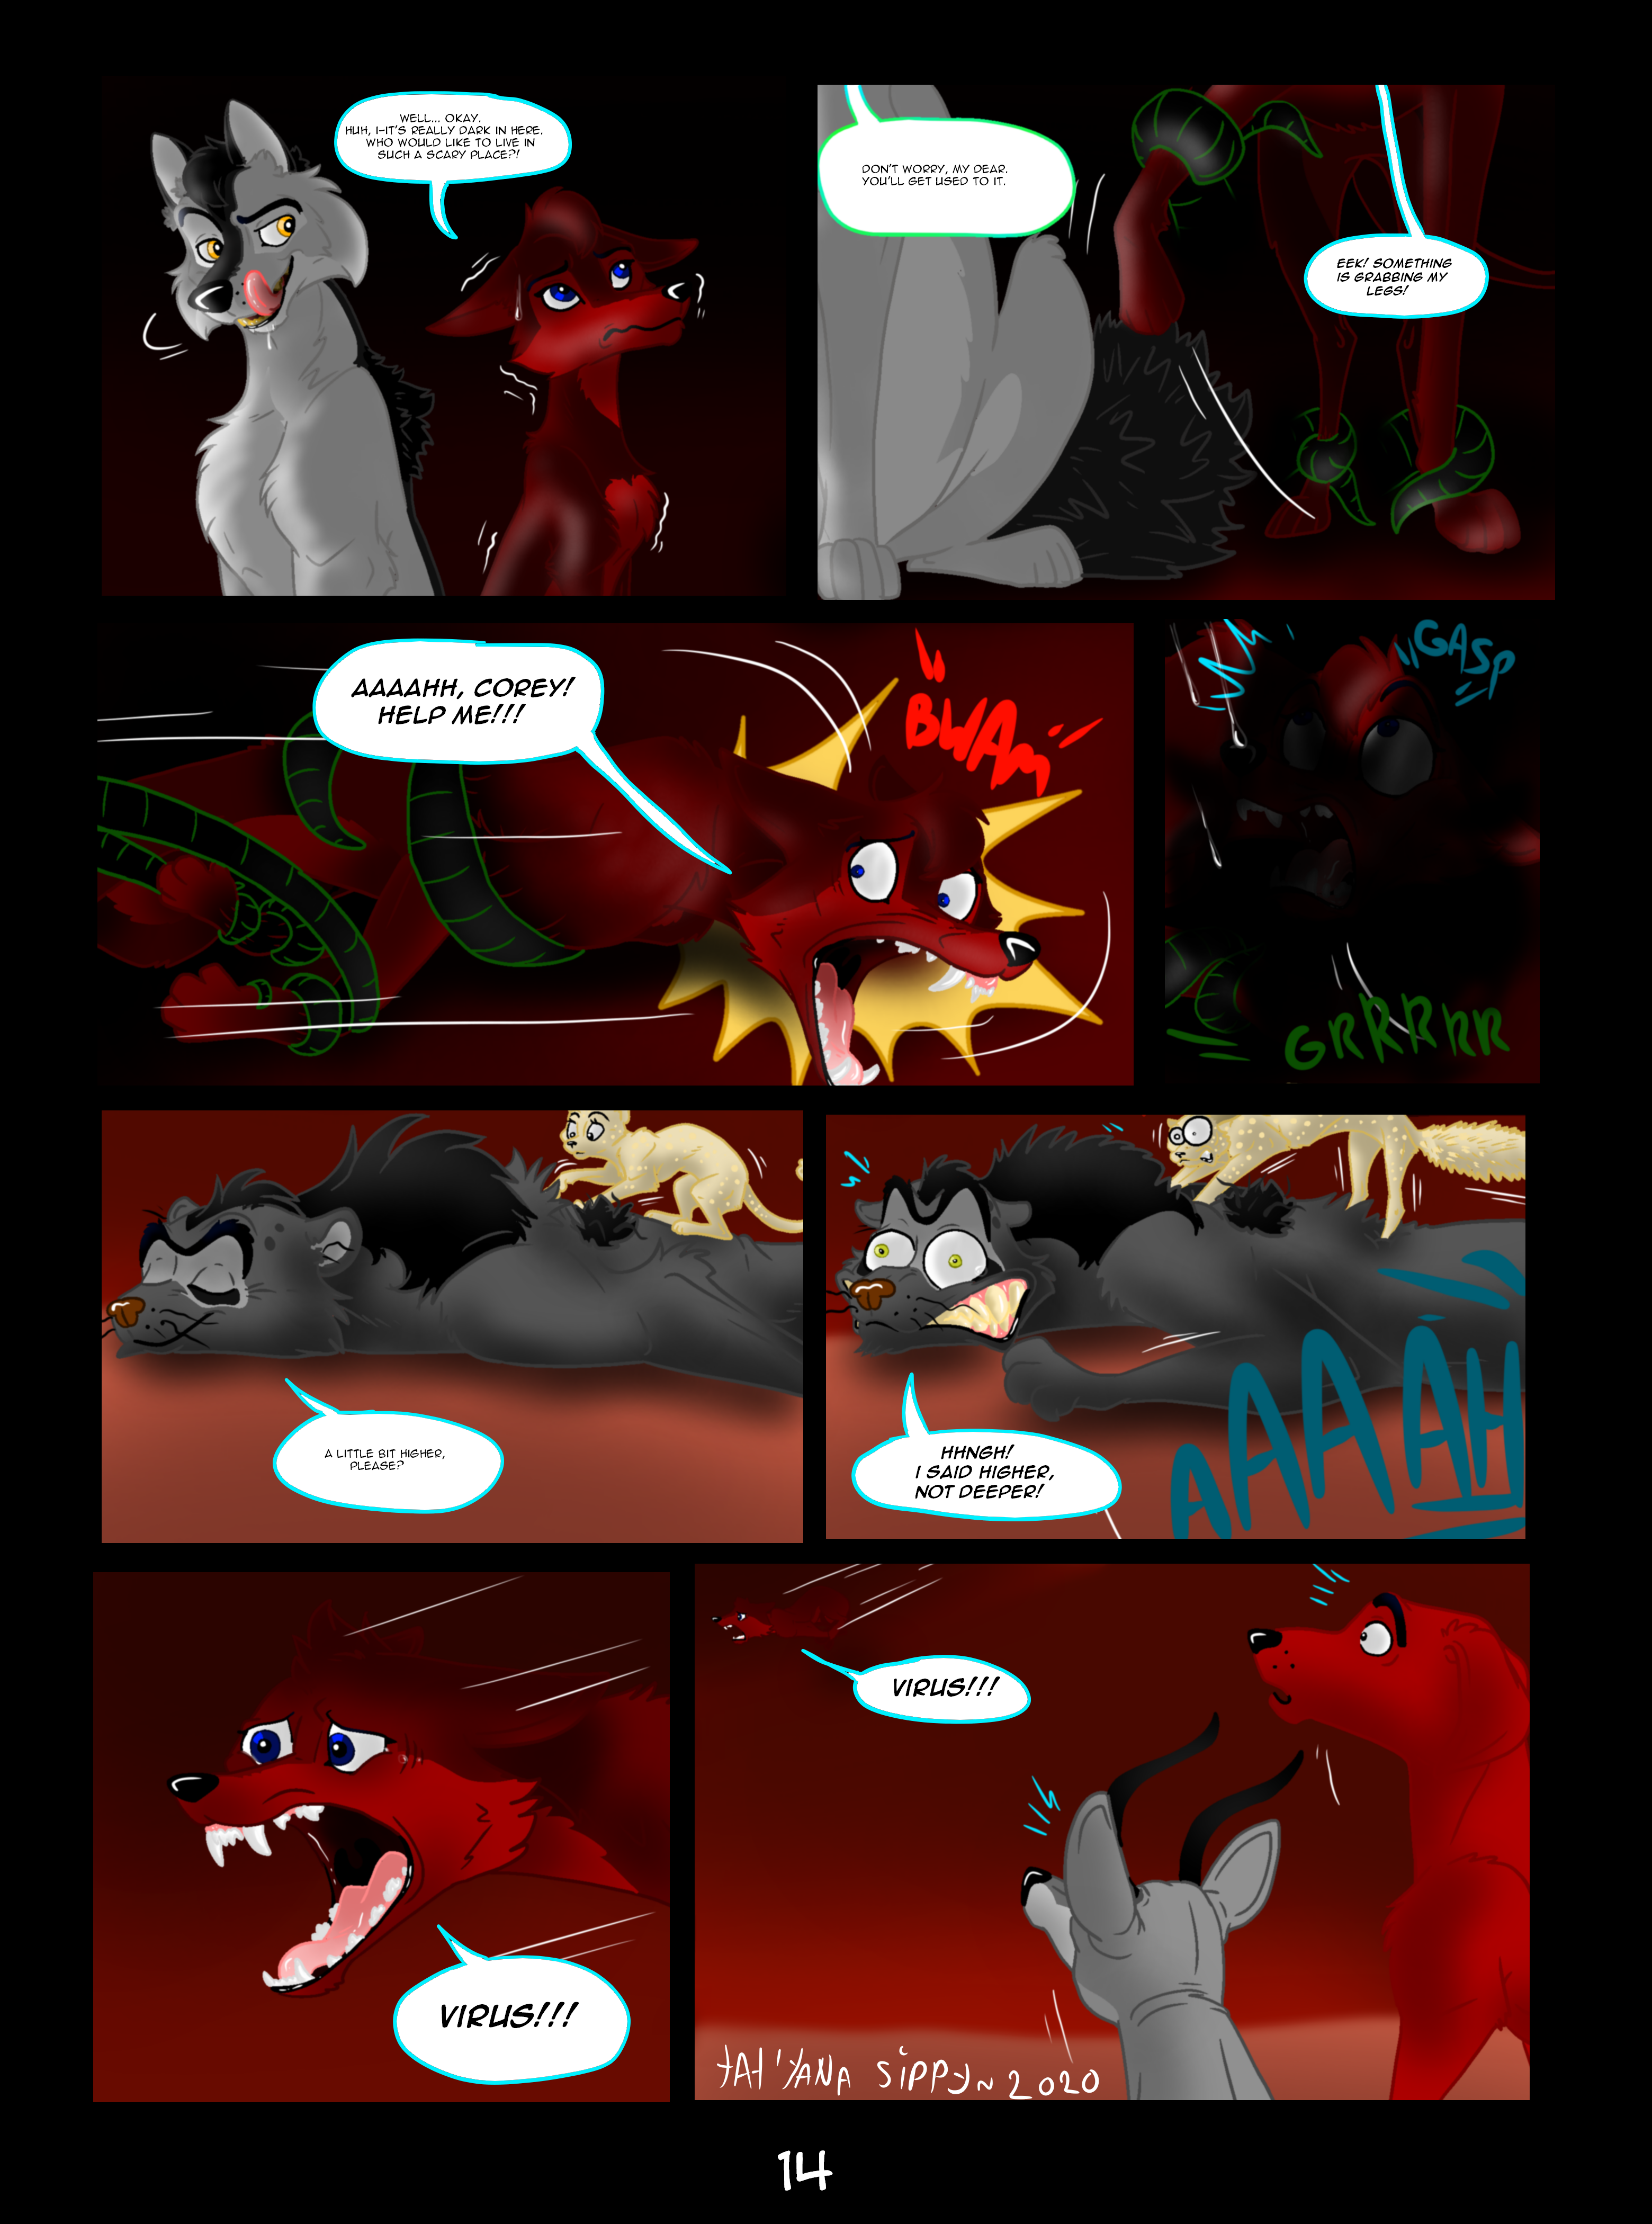 Virus Attack-page 14